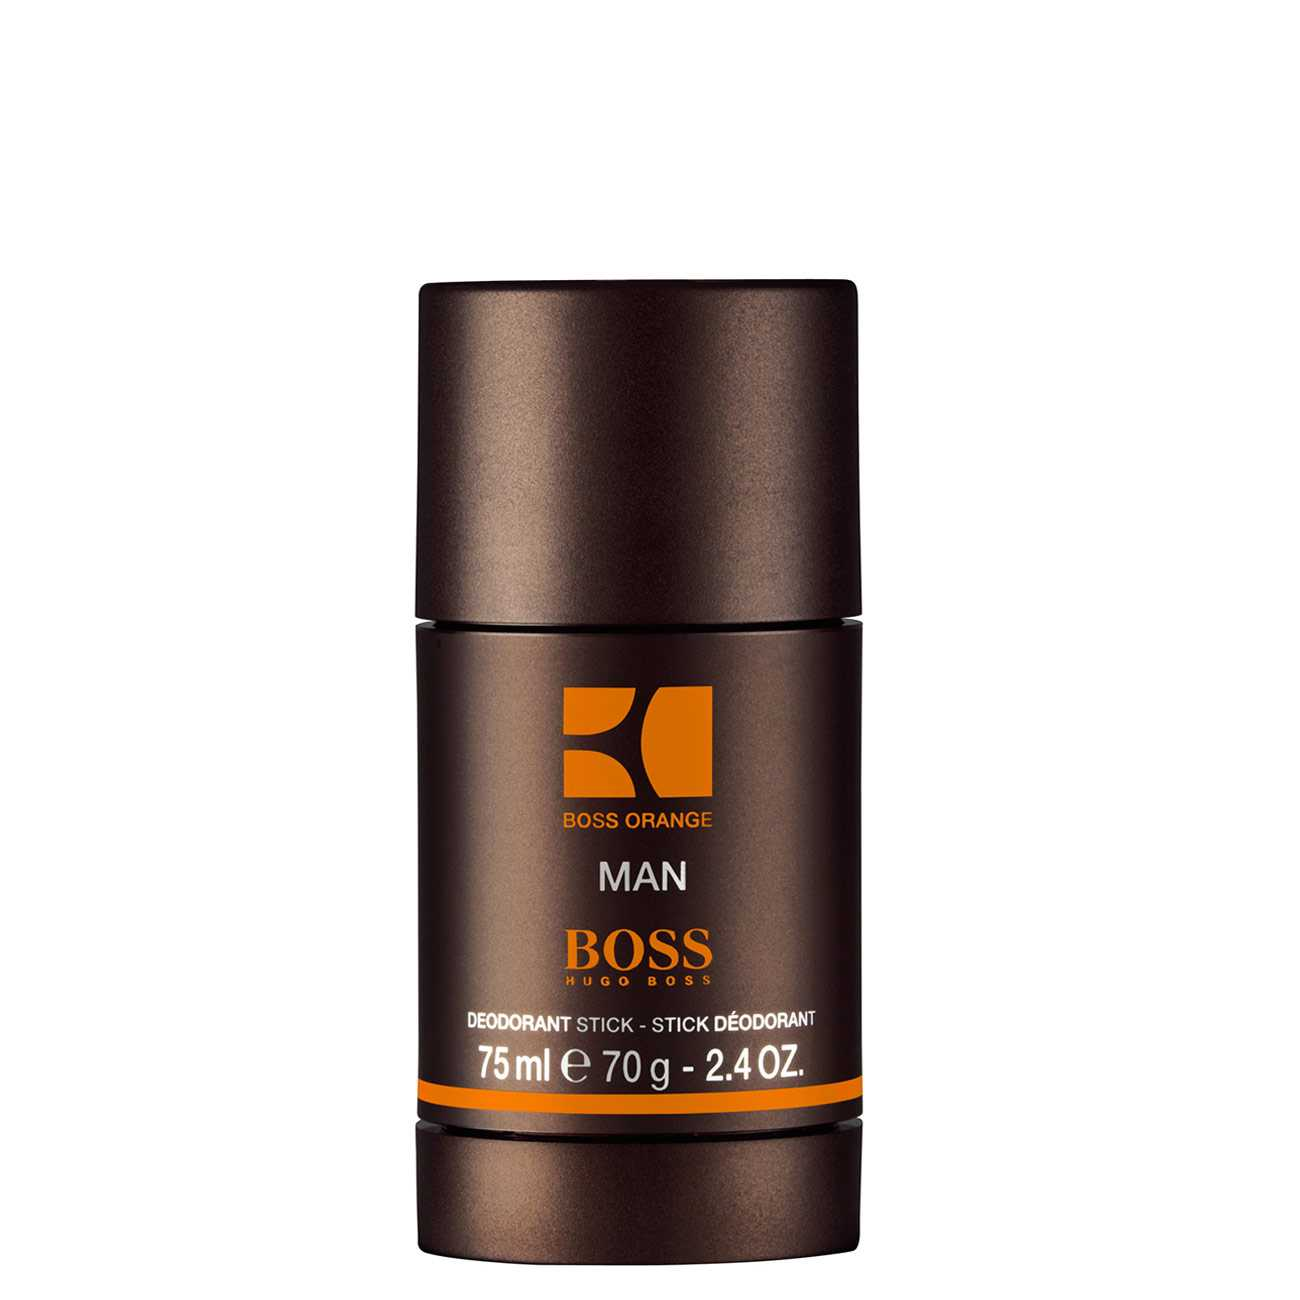 BOSS ORANGE 75 G poza noua